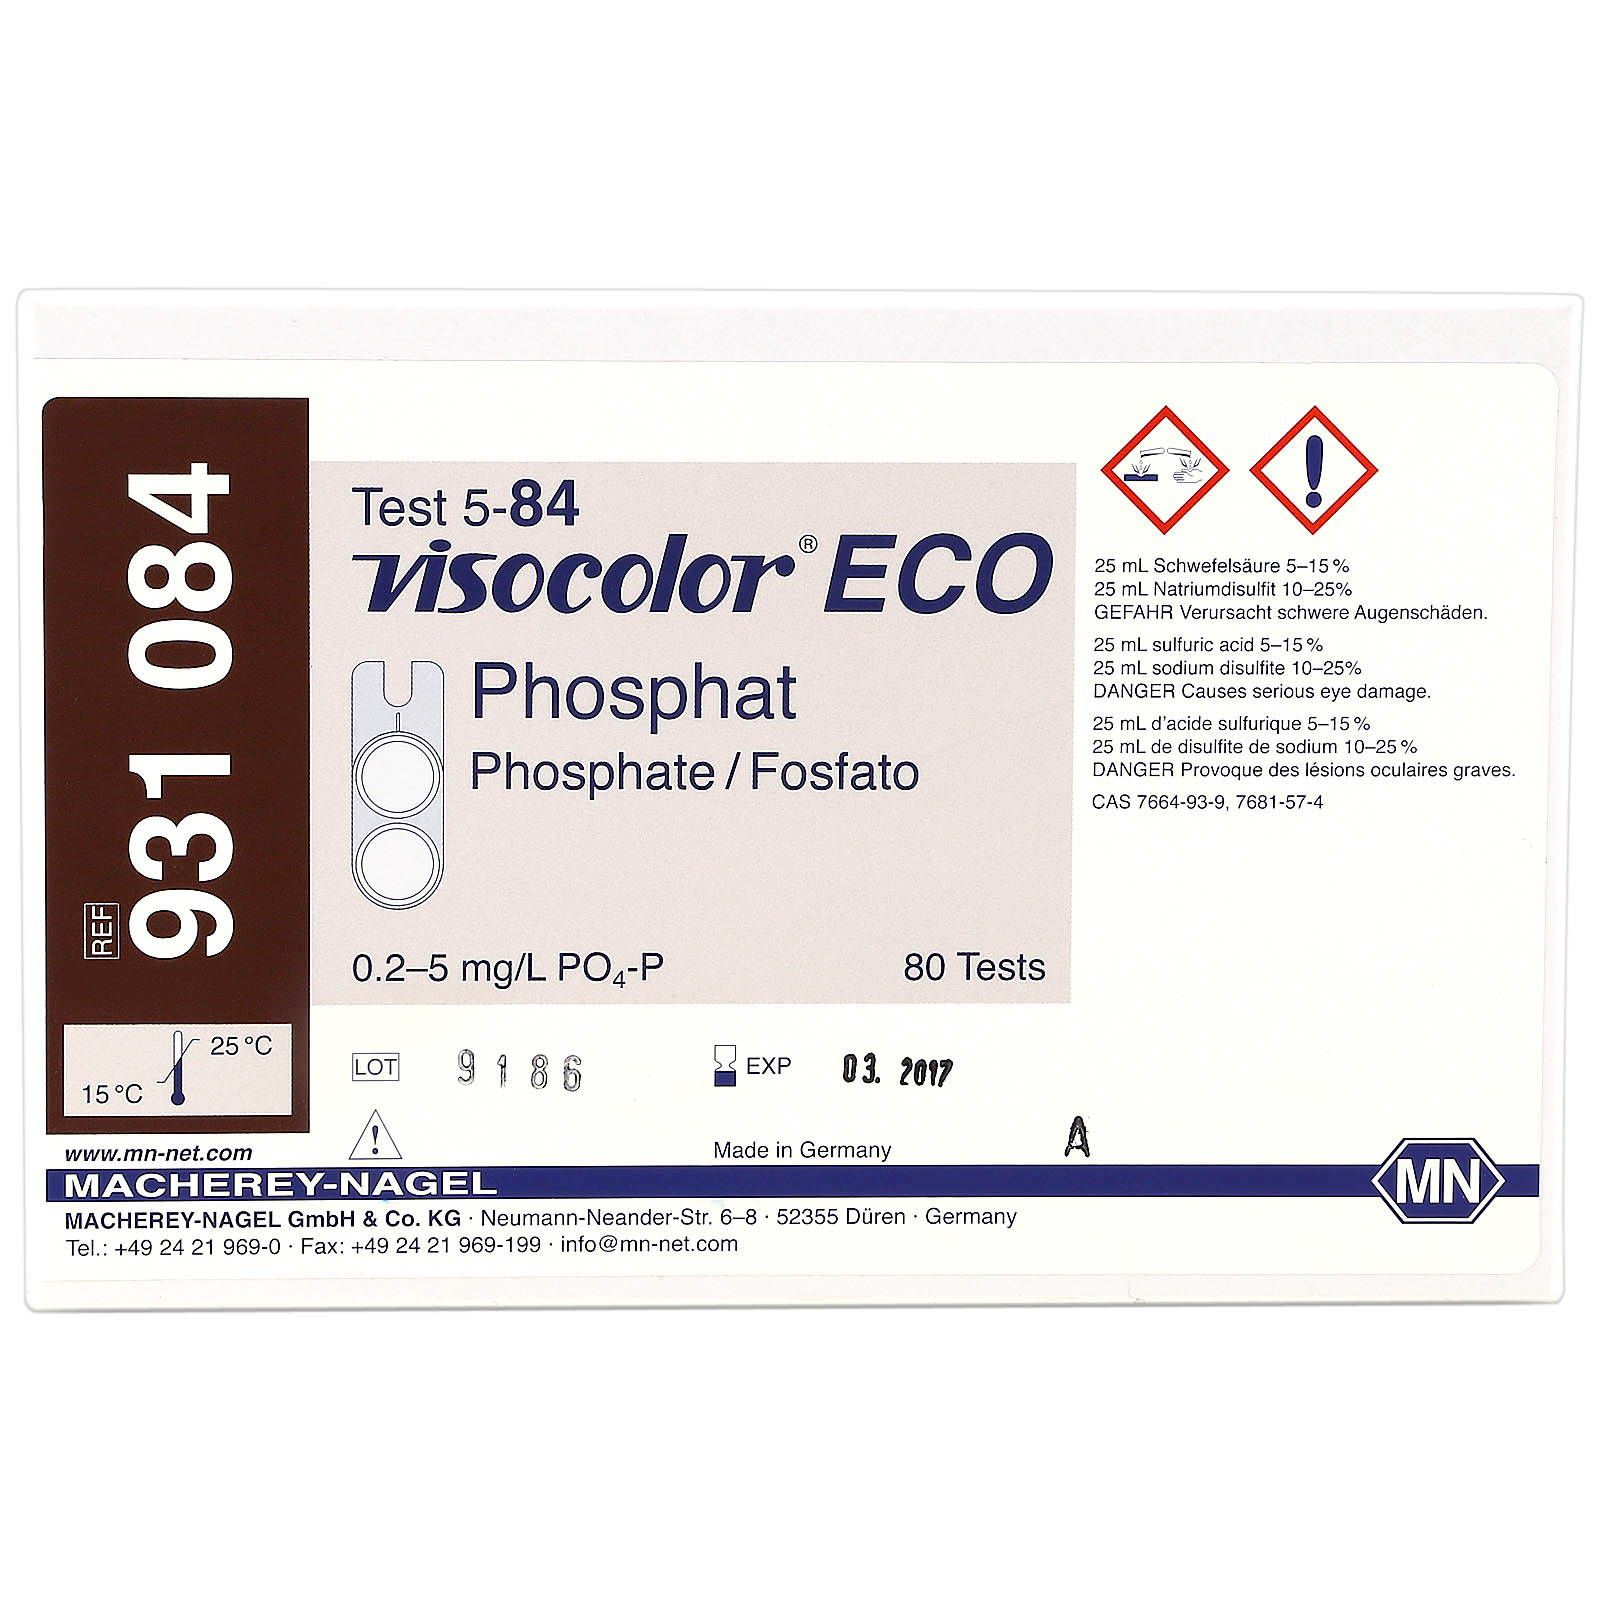 Macherey-Nagel - Visocolor ECO - Phosphate